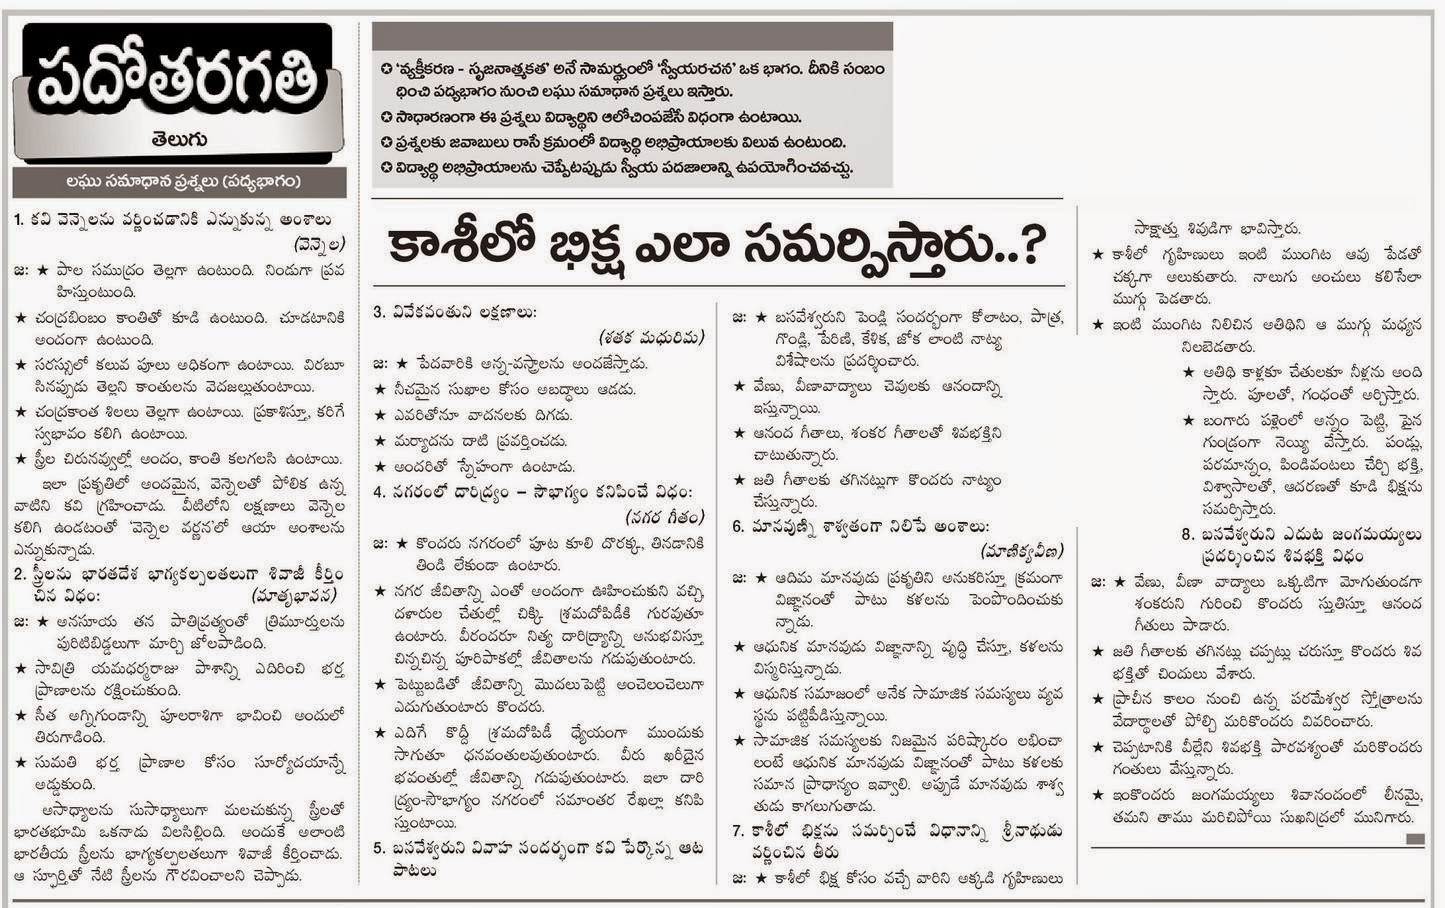 TELUGU GENERAL KNOWLEDGE AND CURRENT AFFAIRS COLLECTION